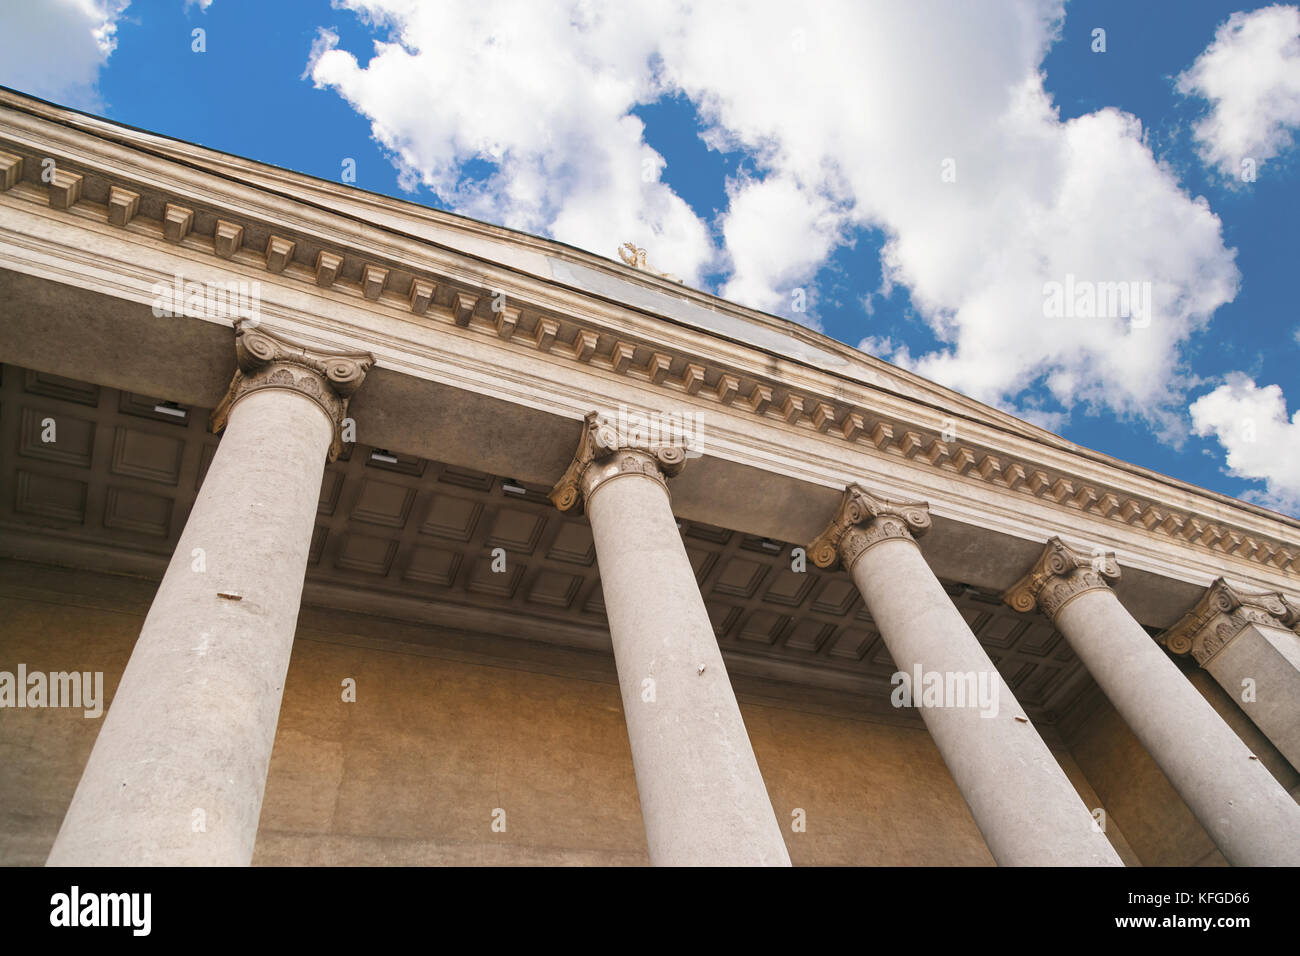 classical pillar on blue sky background, Greek architecture - Stock Image